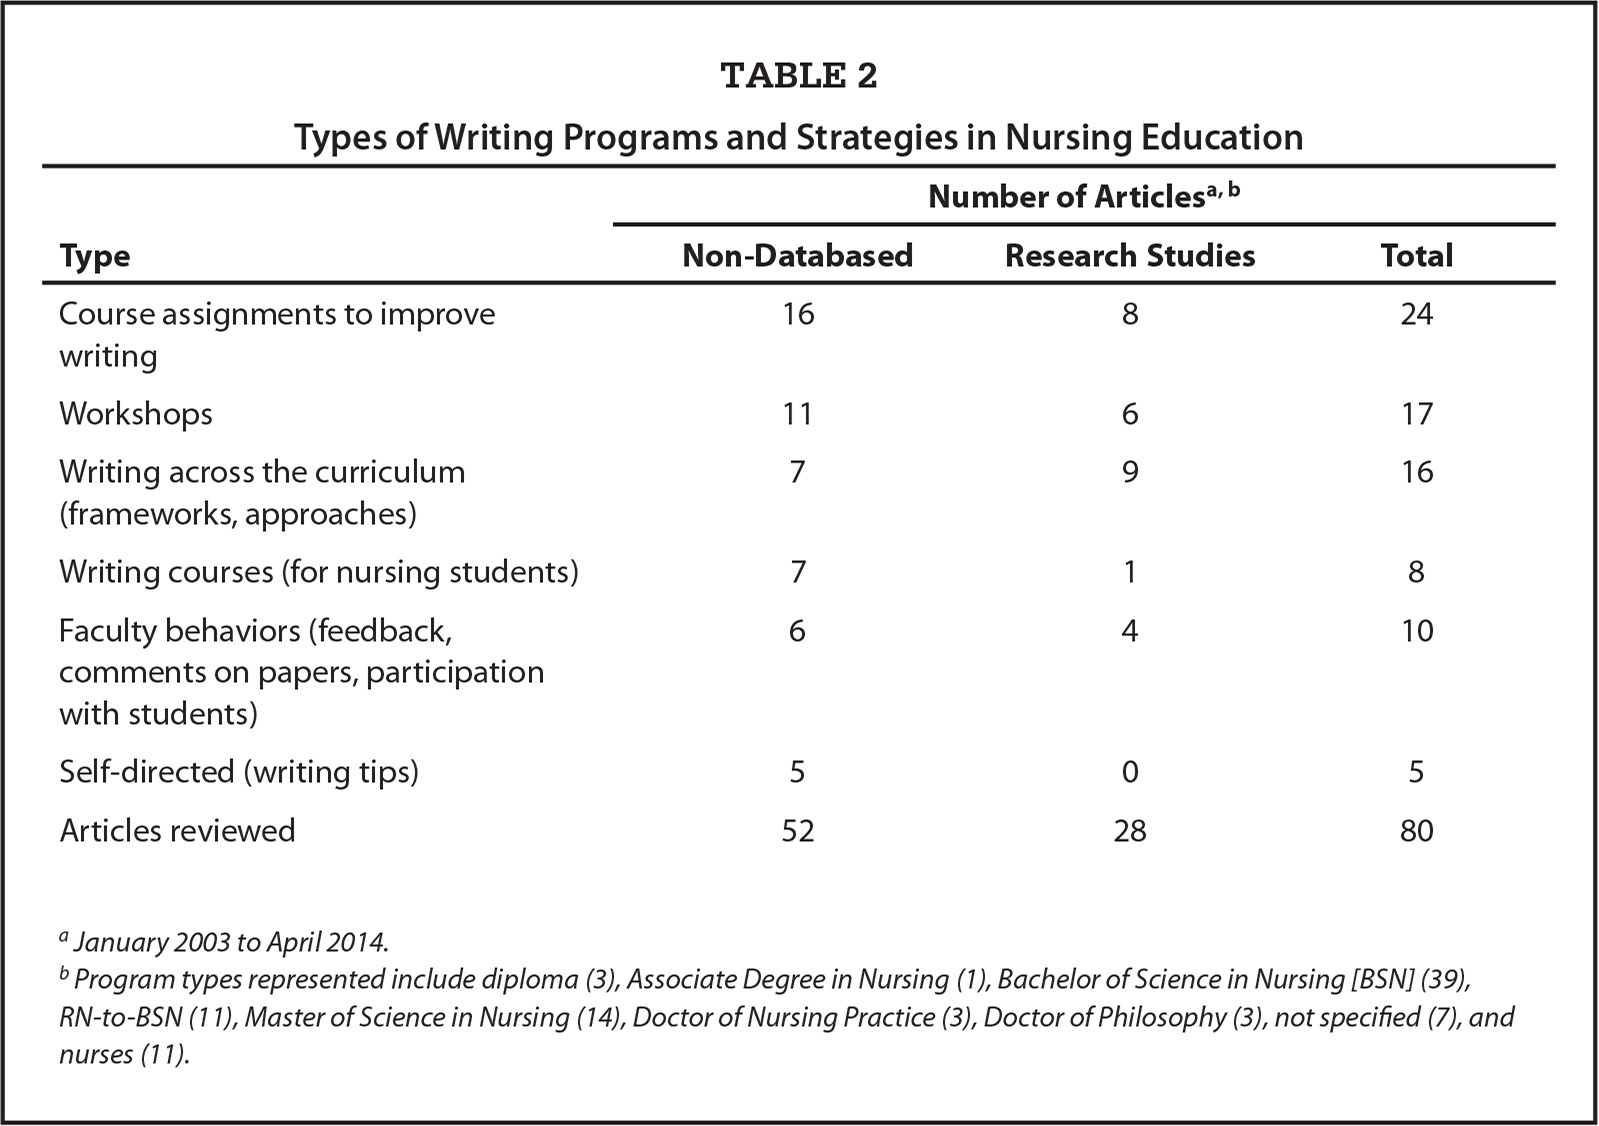 Types of Writing Programs and Strategies in Nursing Education